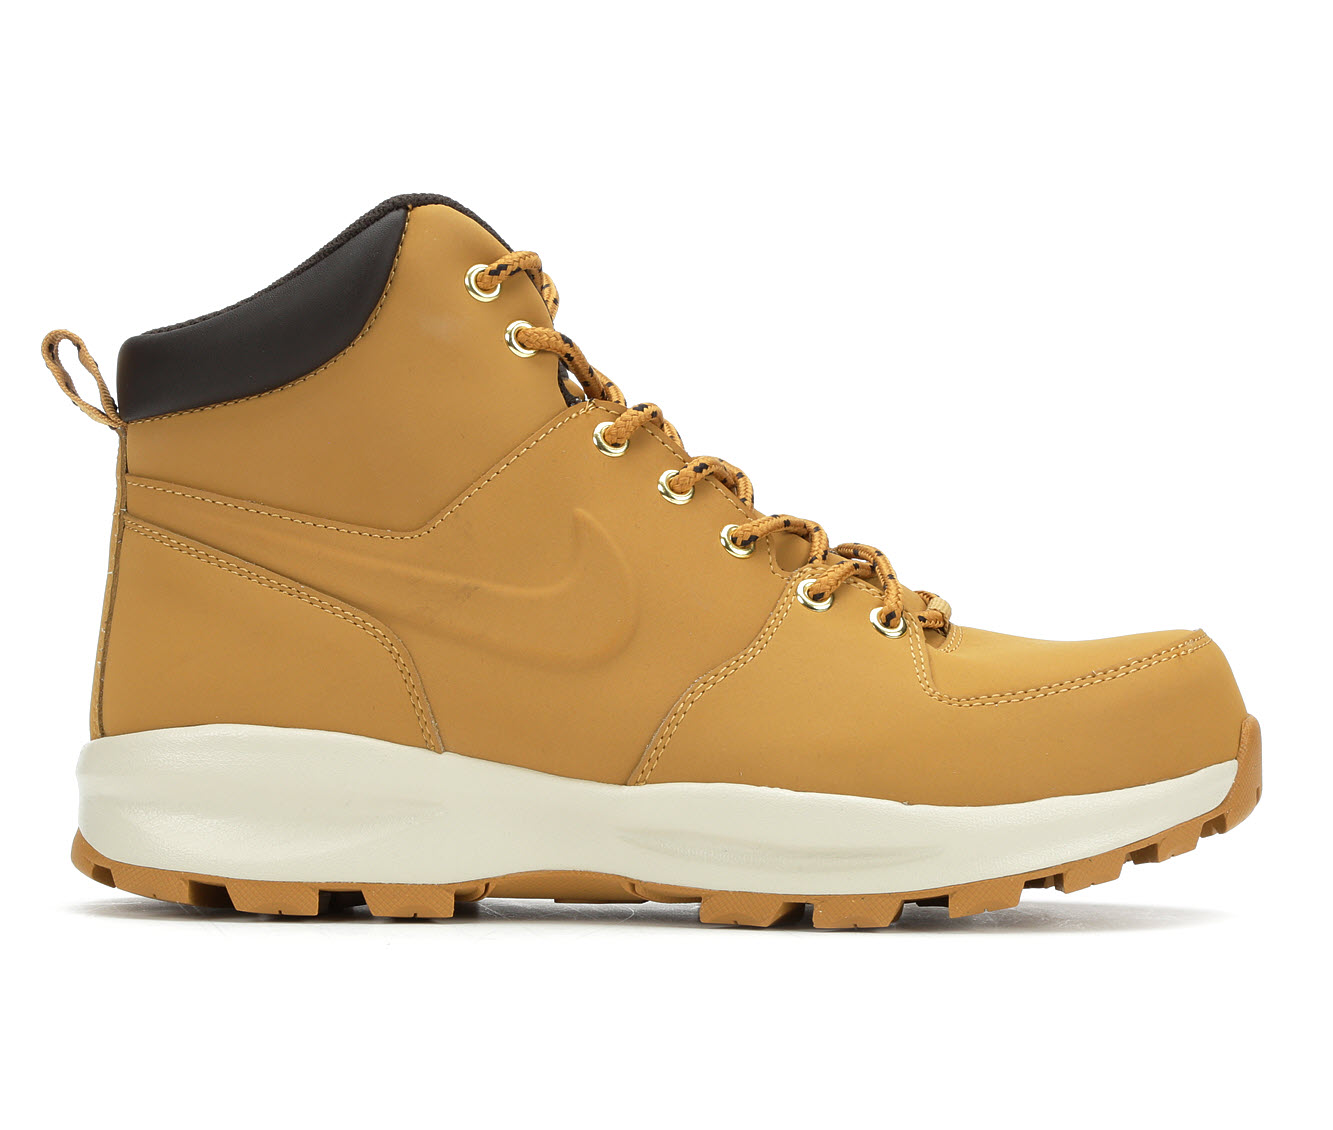 Nike Manoa Leather Lace-Up Men's Boots (Beige Leather)